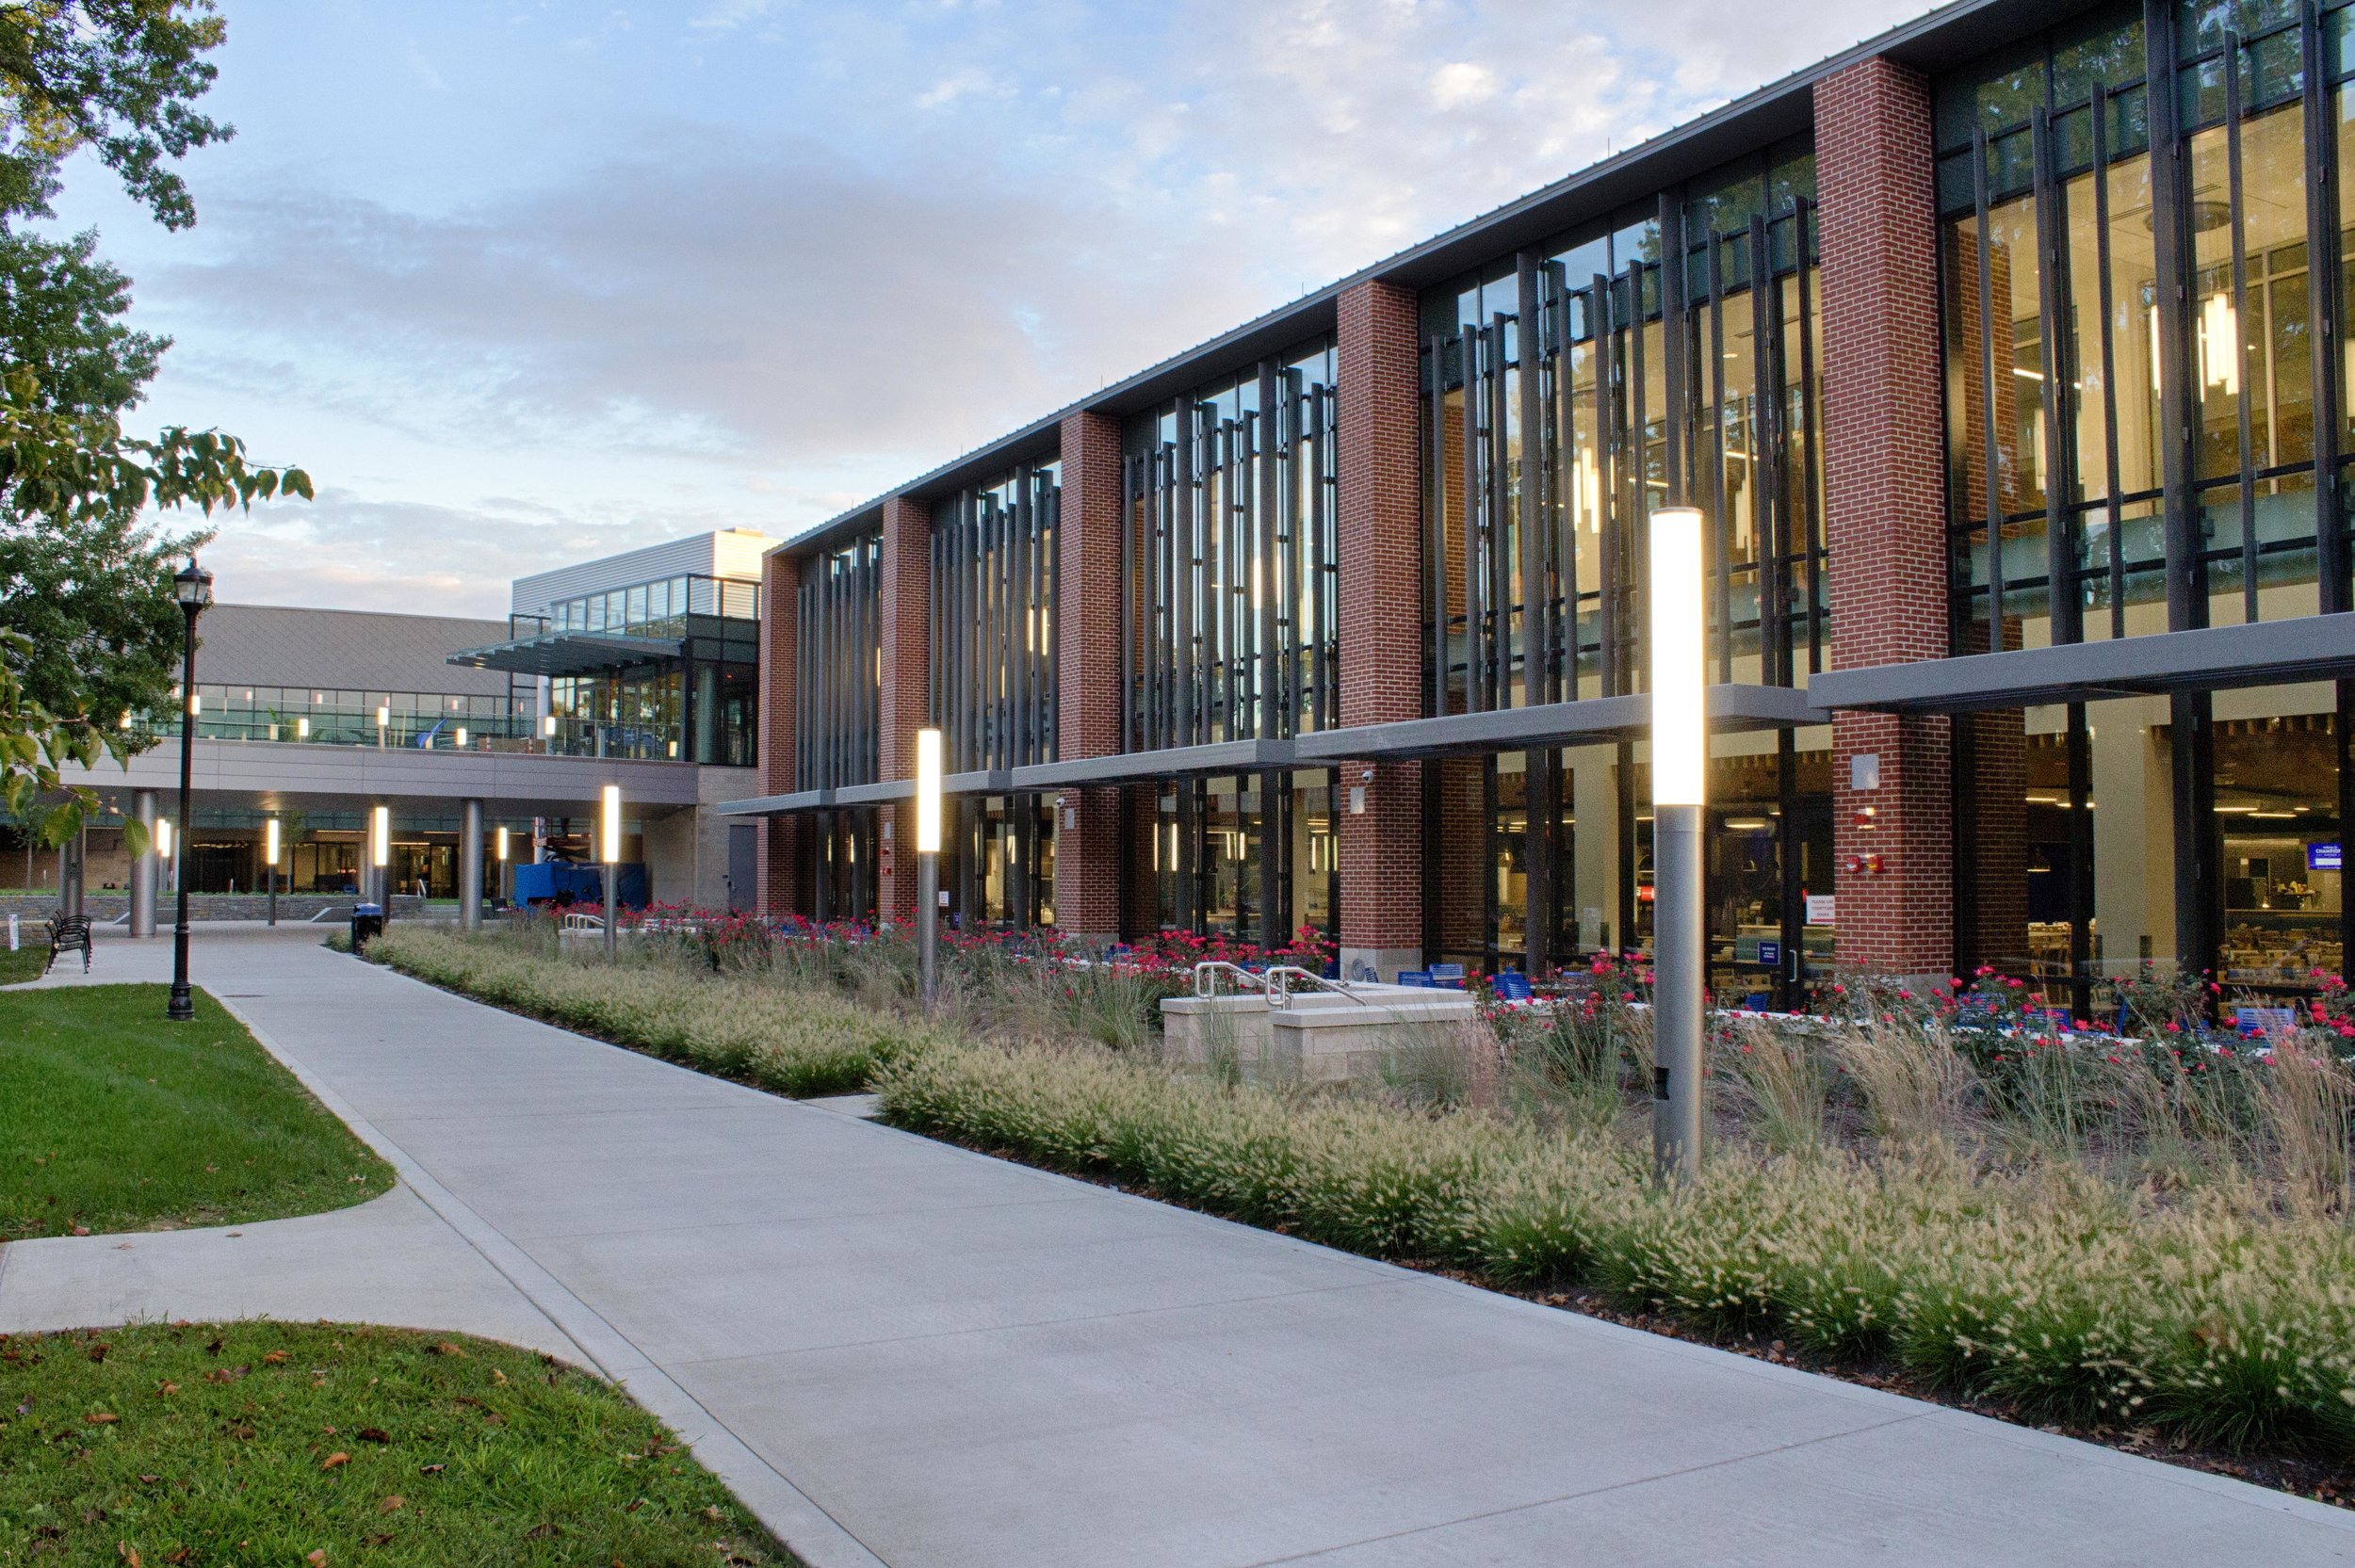 FEATURED: University of Kentucky Student Center is now open!